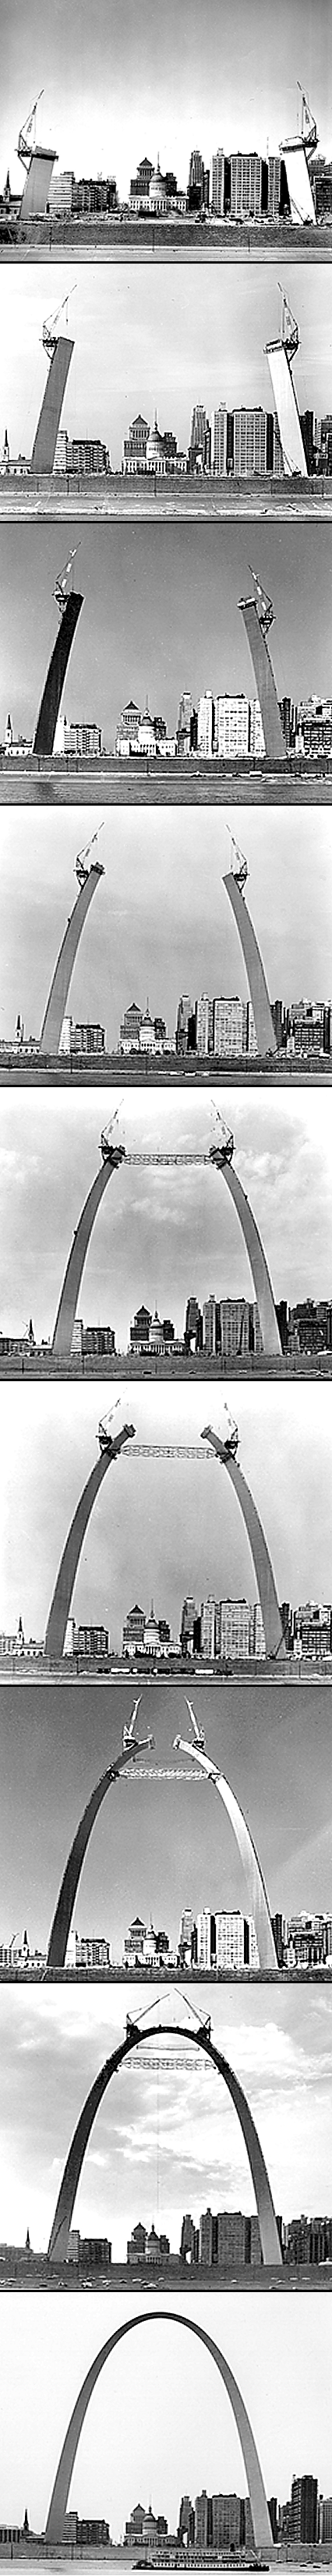 Gateway Arch St. Louis building